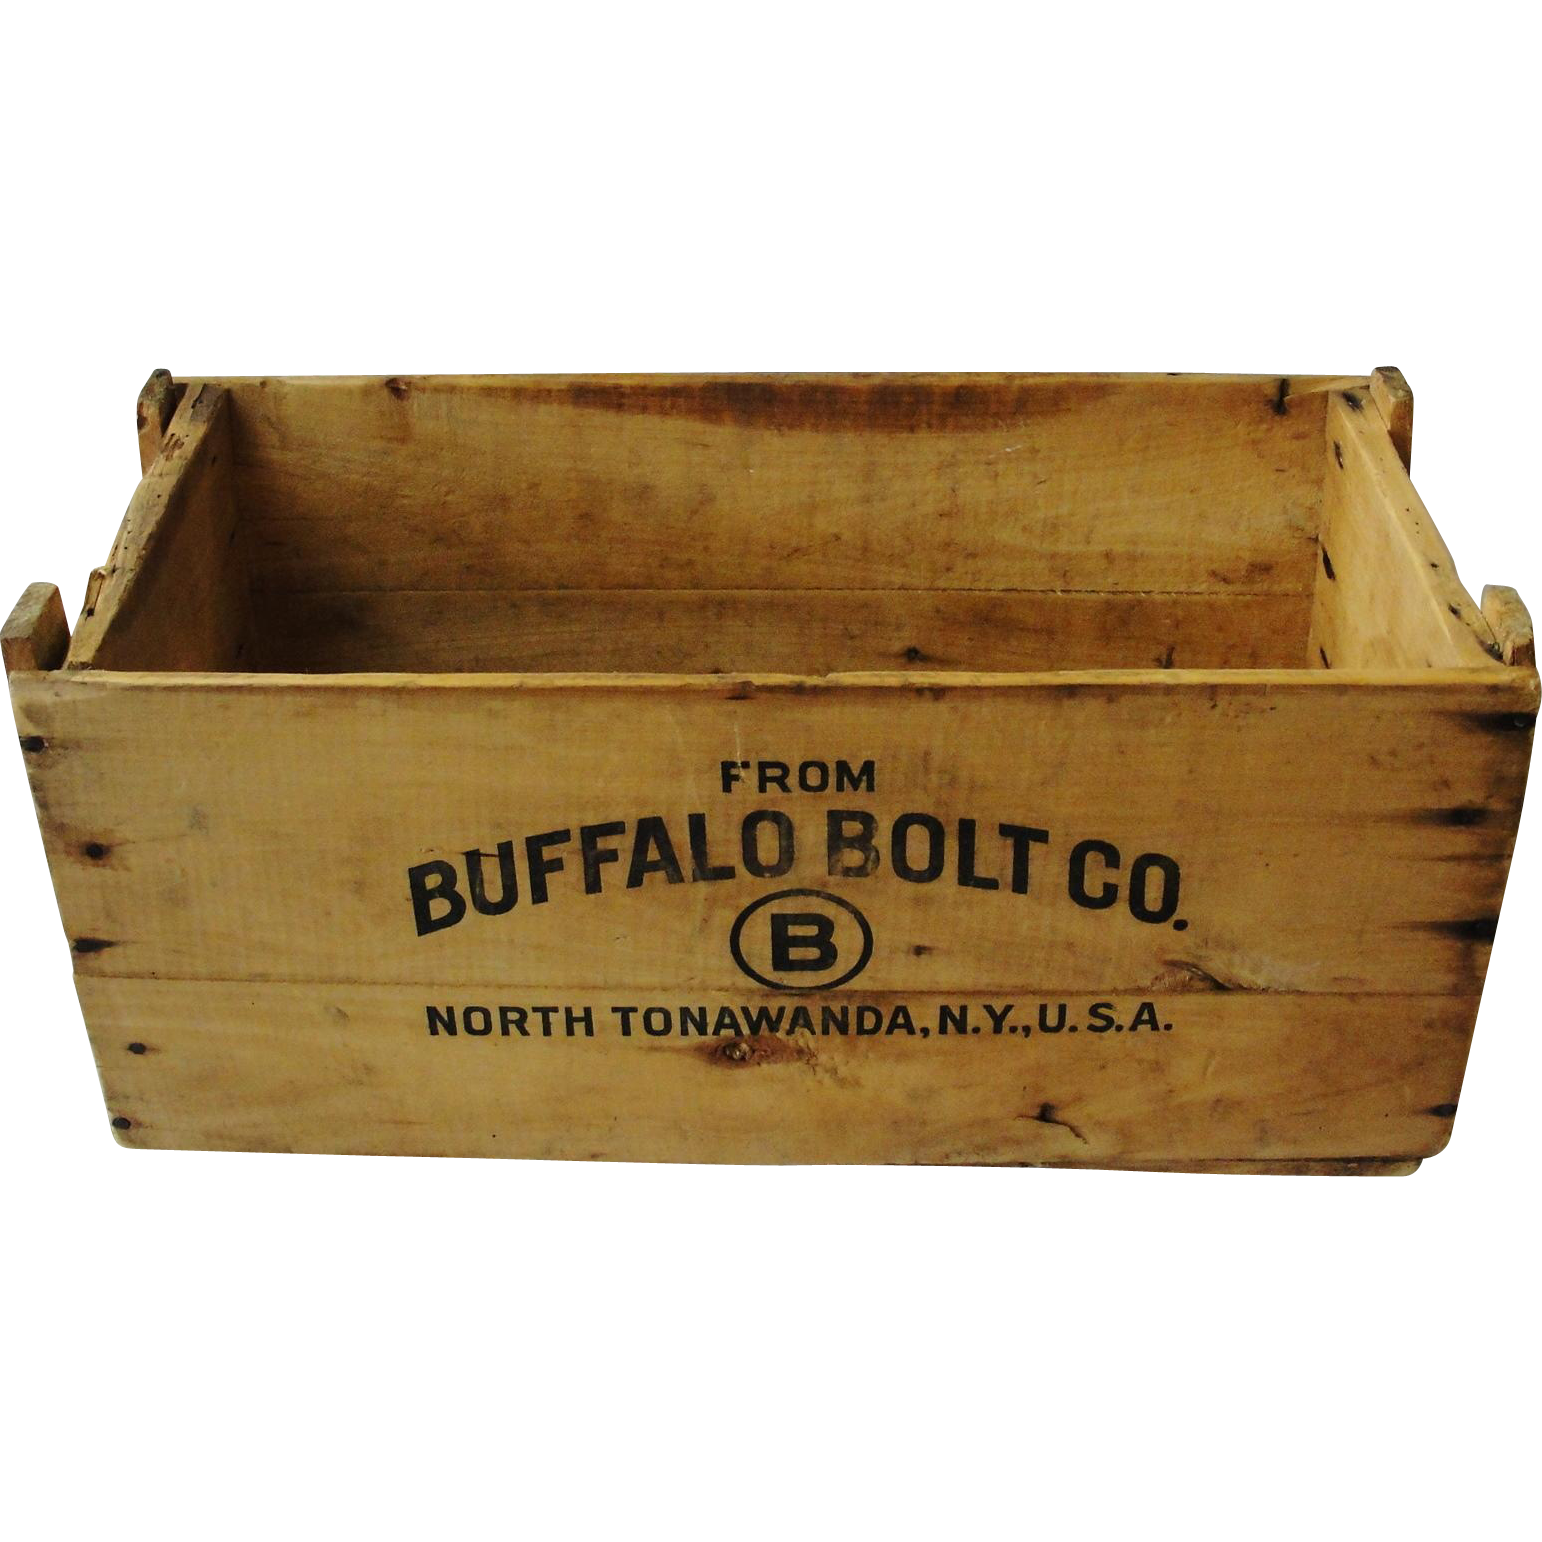 Vintage Buffalo Bolt Company Wooden Advertising Box Crate